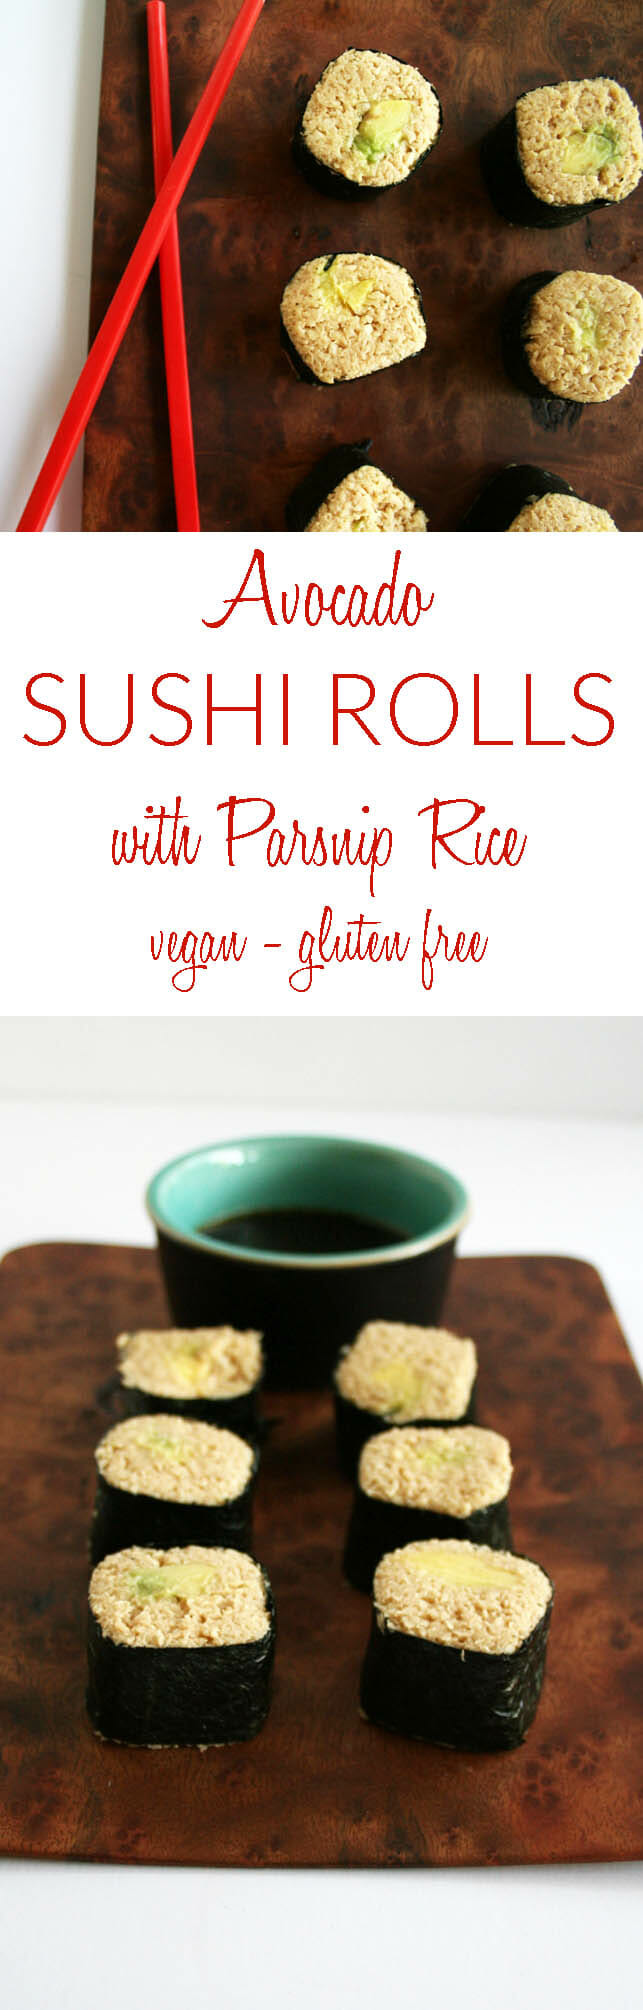 Avocado Sushi Rolls with Parsnip Rice collage photo with text.